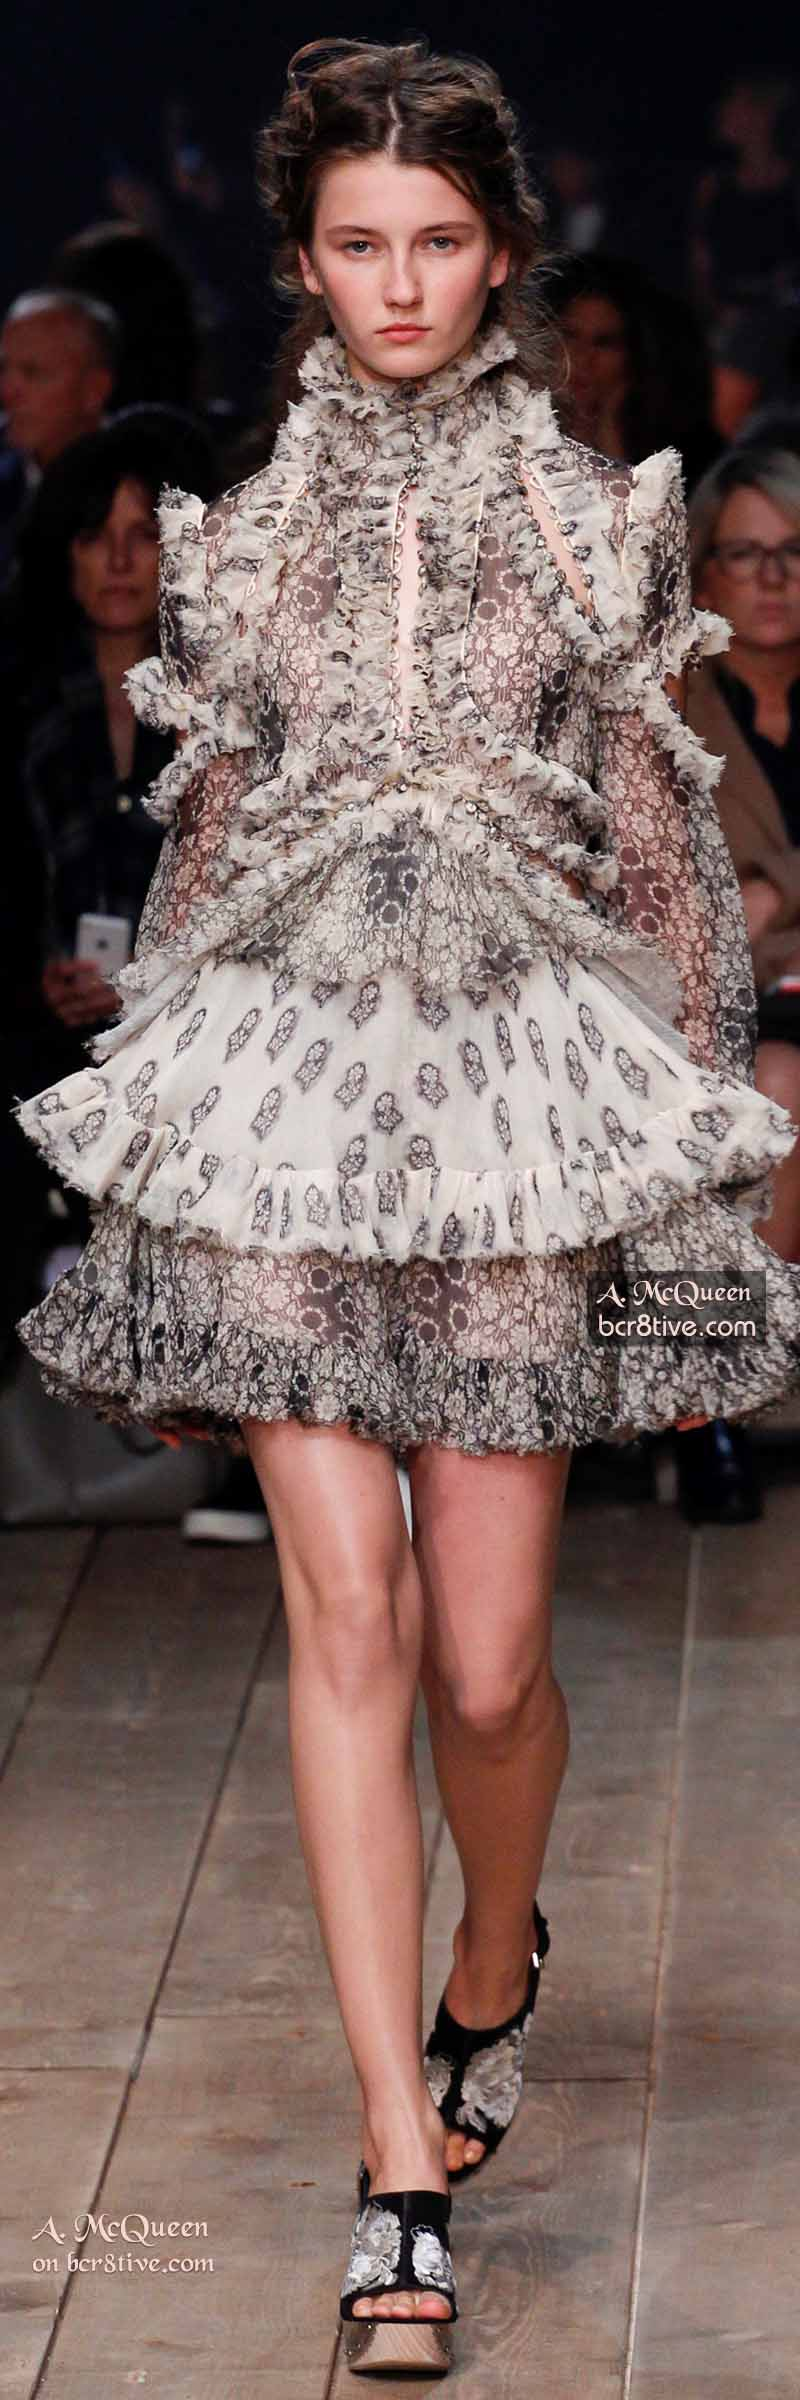 The Best of Alexander McQueen 2016